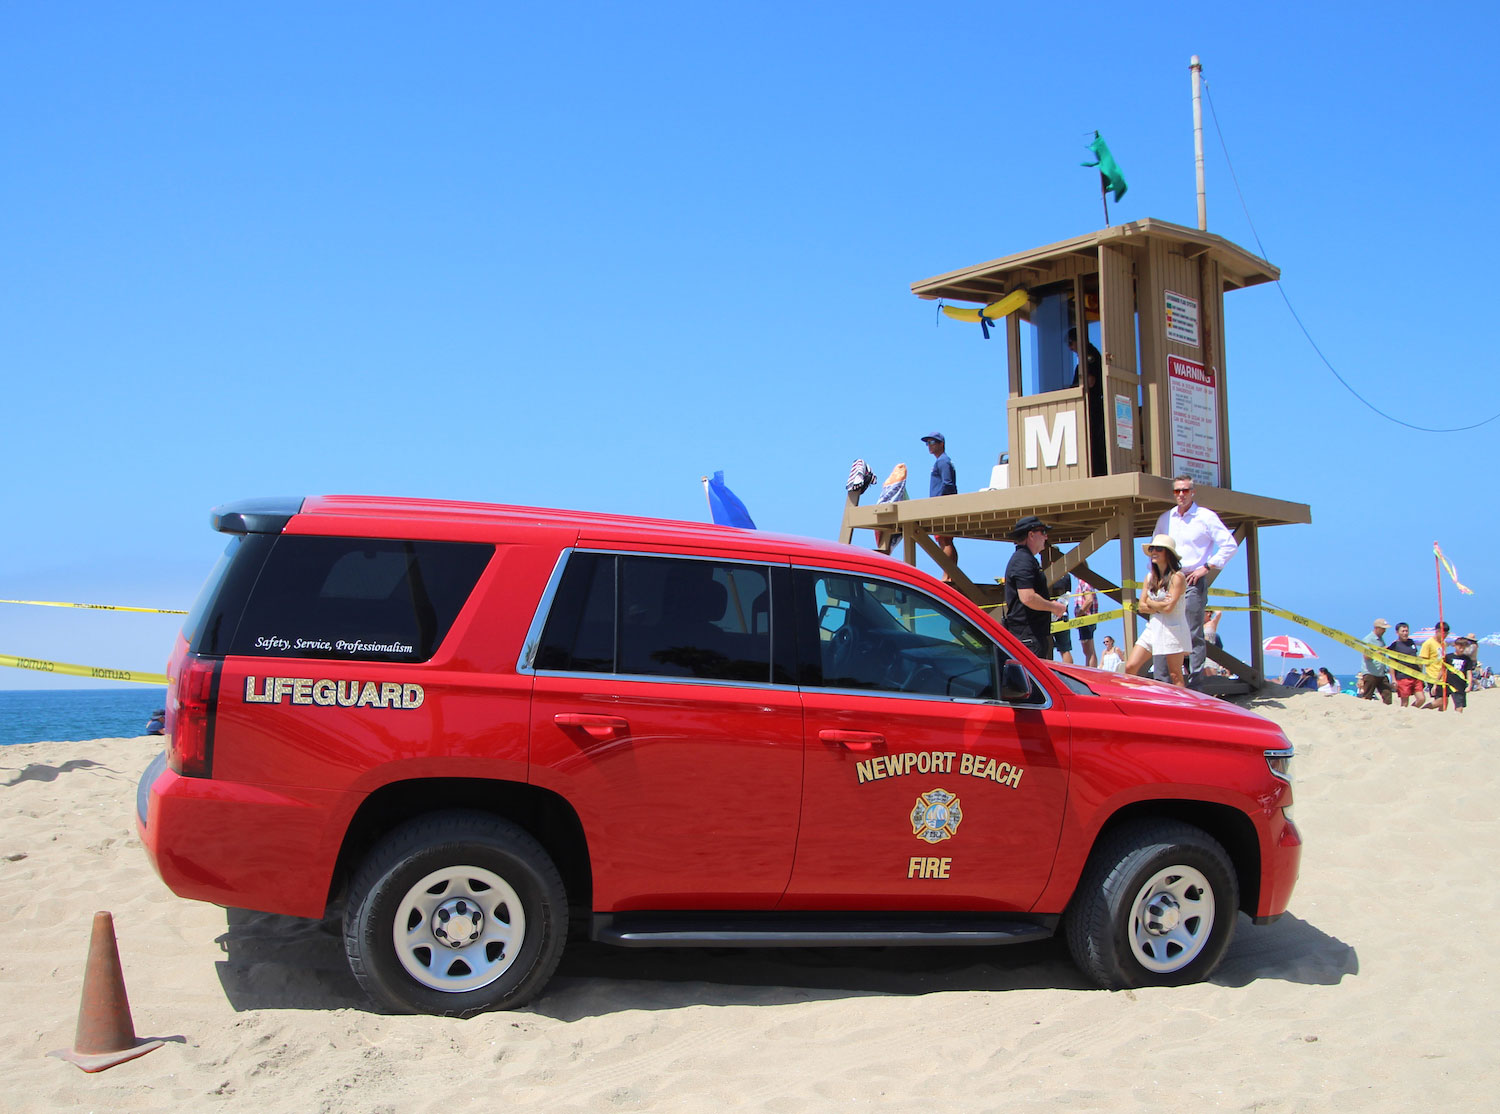 Lifeguards Red truck